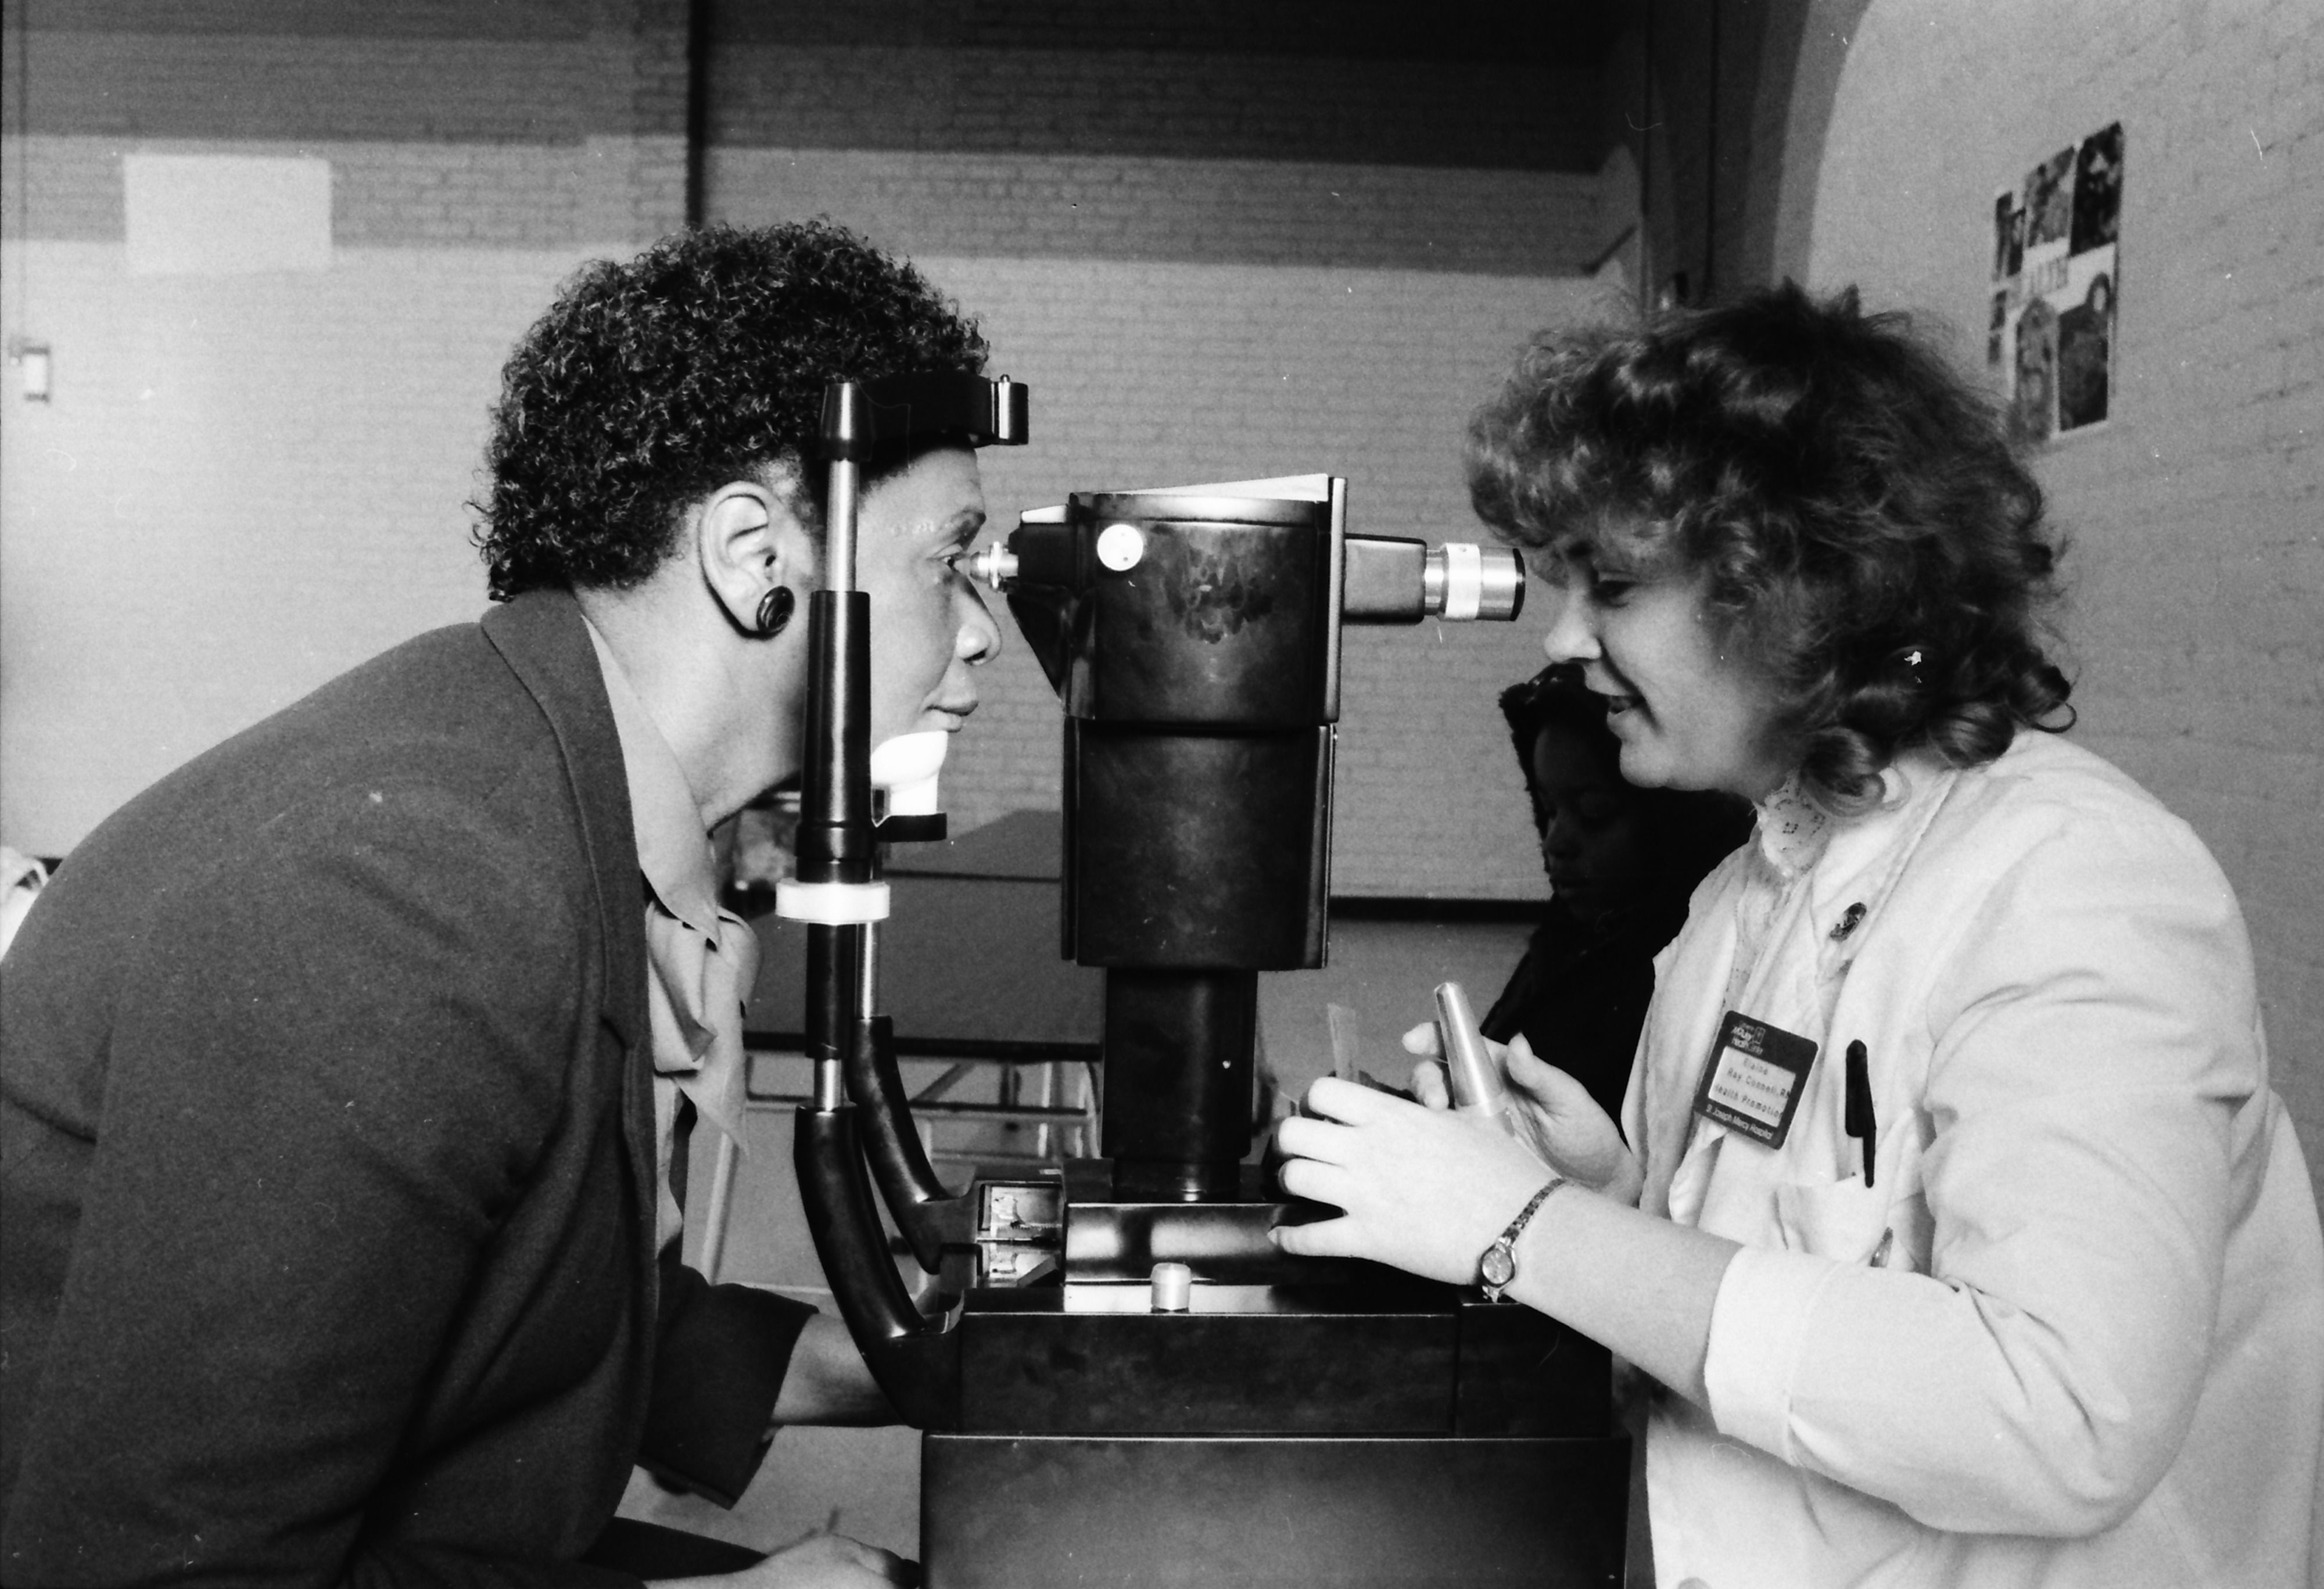 Elsie Tipton Receives Eye Examination at Parkridge Community Center Info Fair, February 1986 image